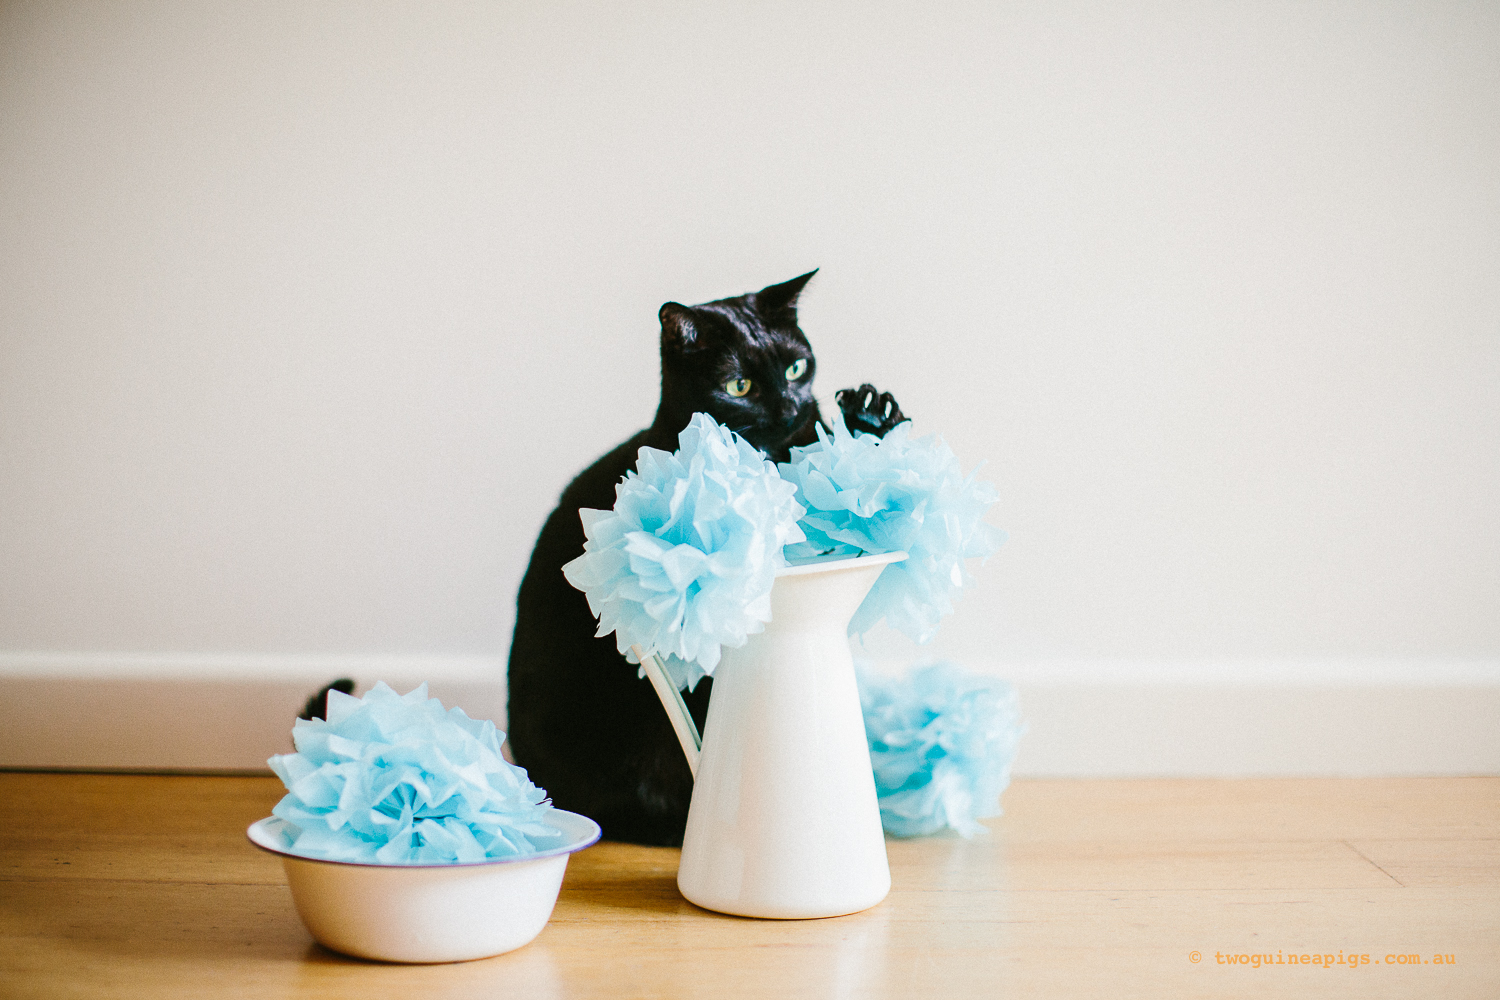 twoguineapigs_pet_photography_ruby_slipper_cat_floral_series_TEST_1500-35.jpg